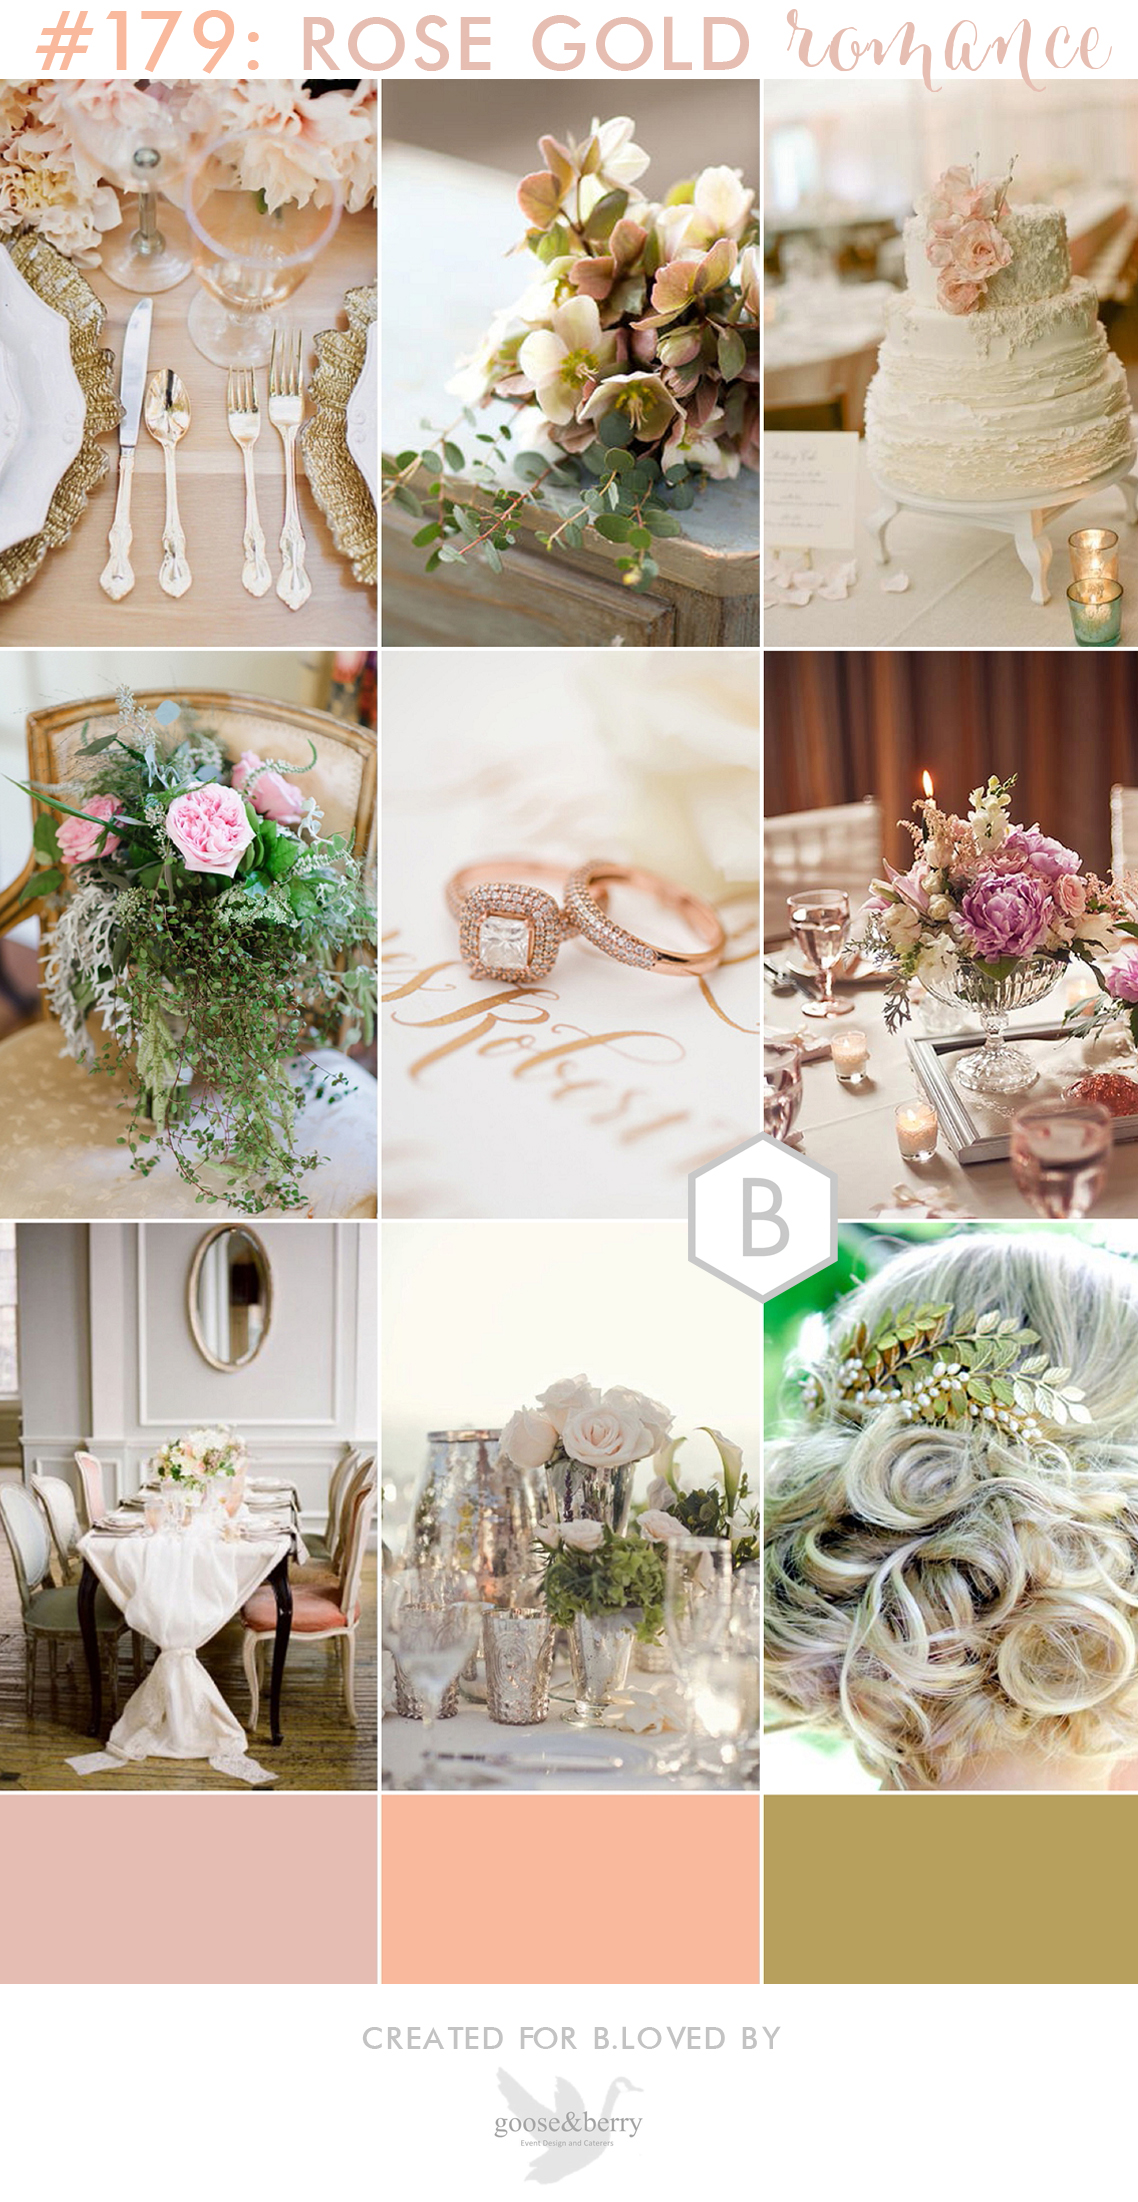 179 goose & berry copper rose wedding inspiration board for bloved